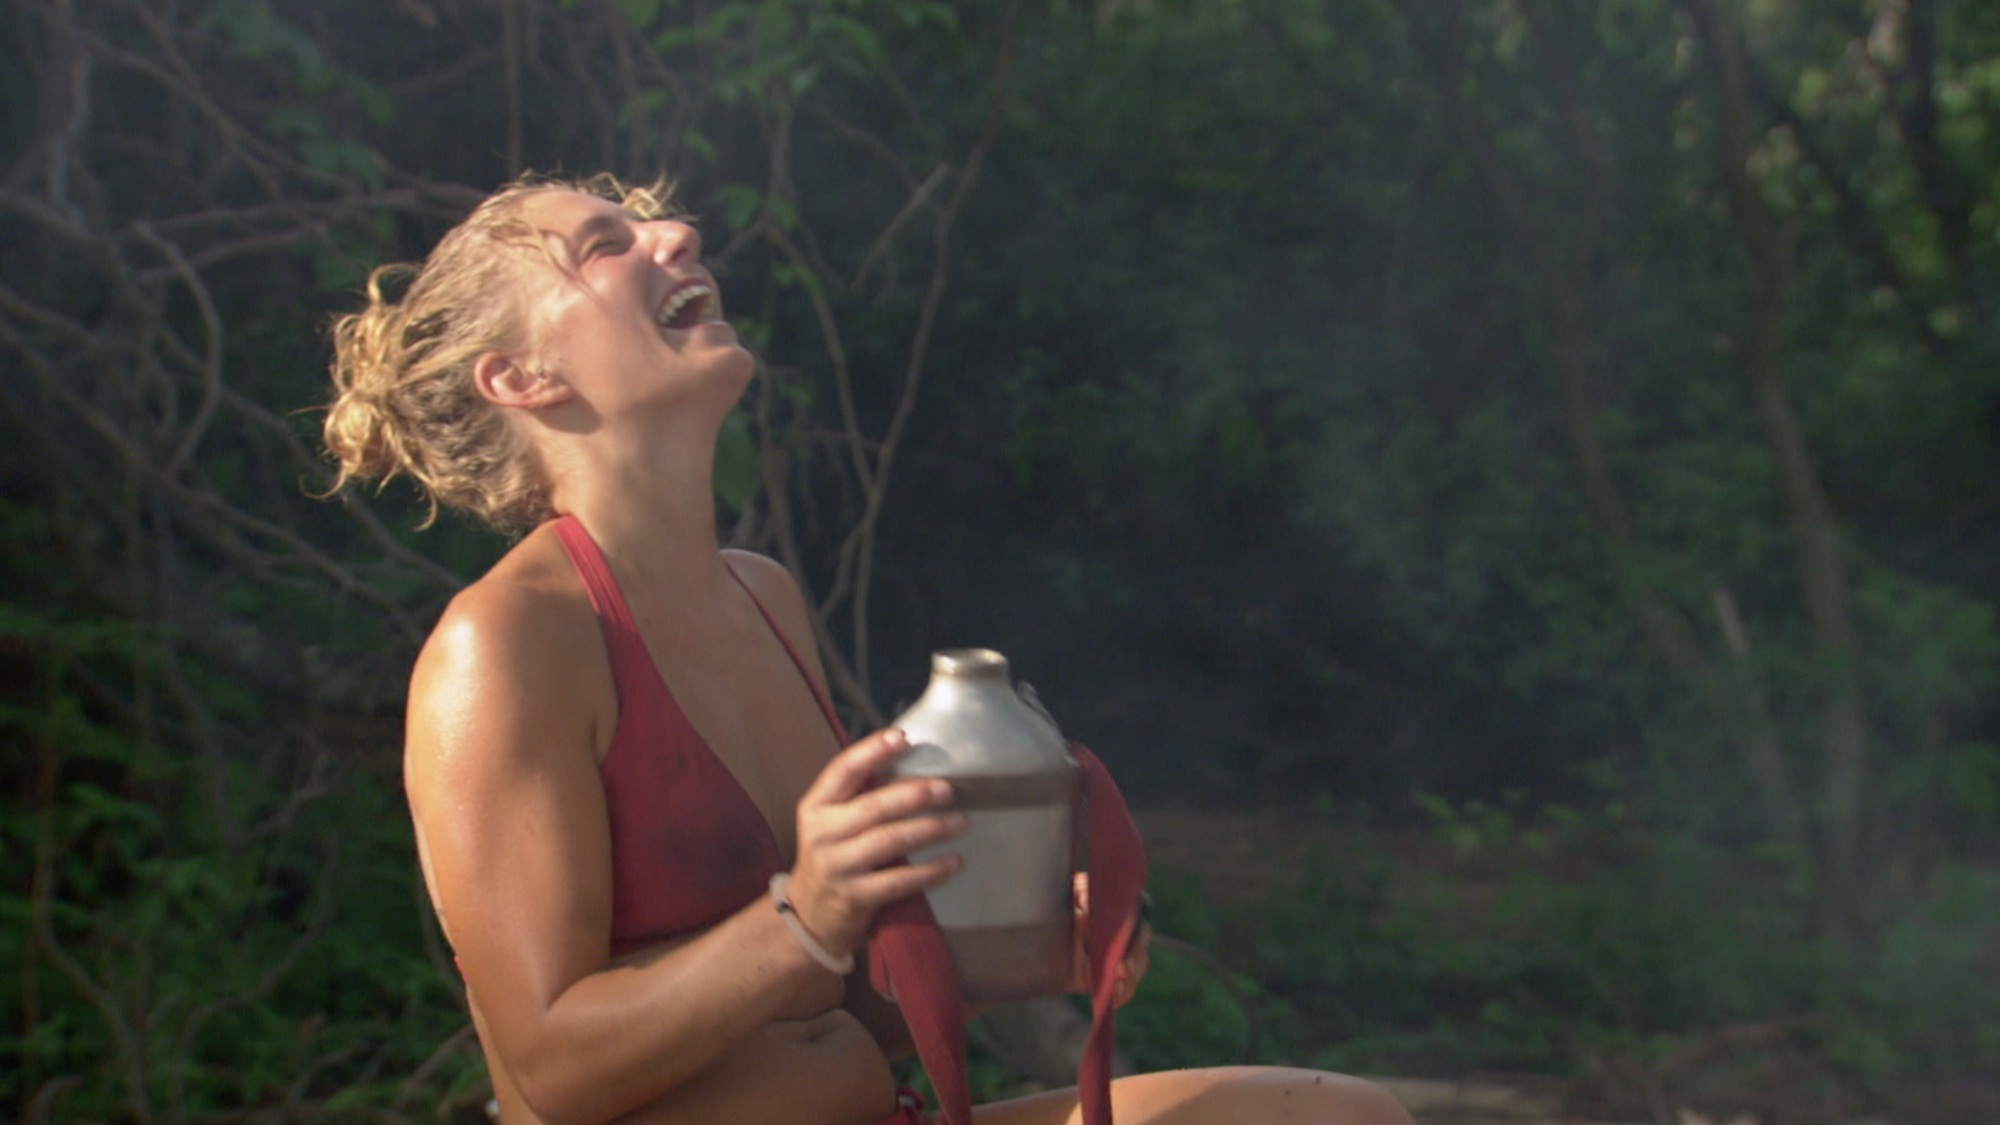 Jenn Brown during the ninth episode of  Survivor: Worlds Apart, laughing and holding a vase or urn